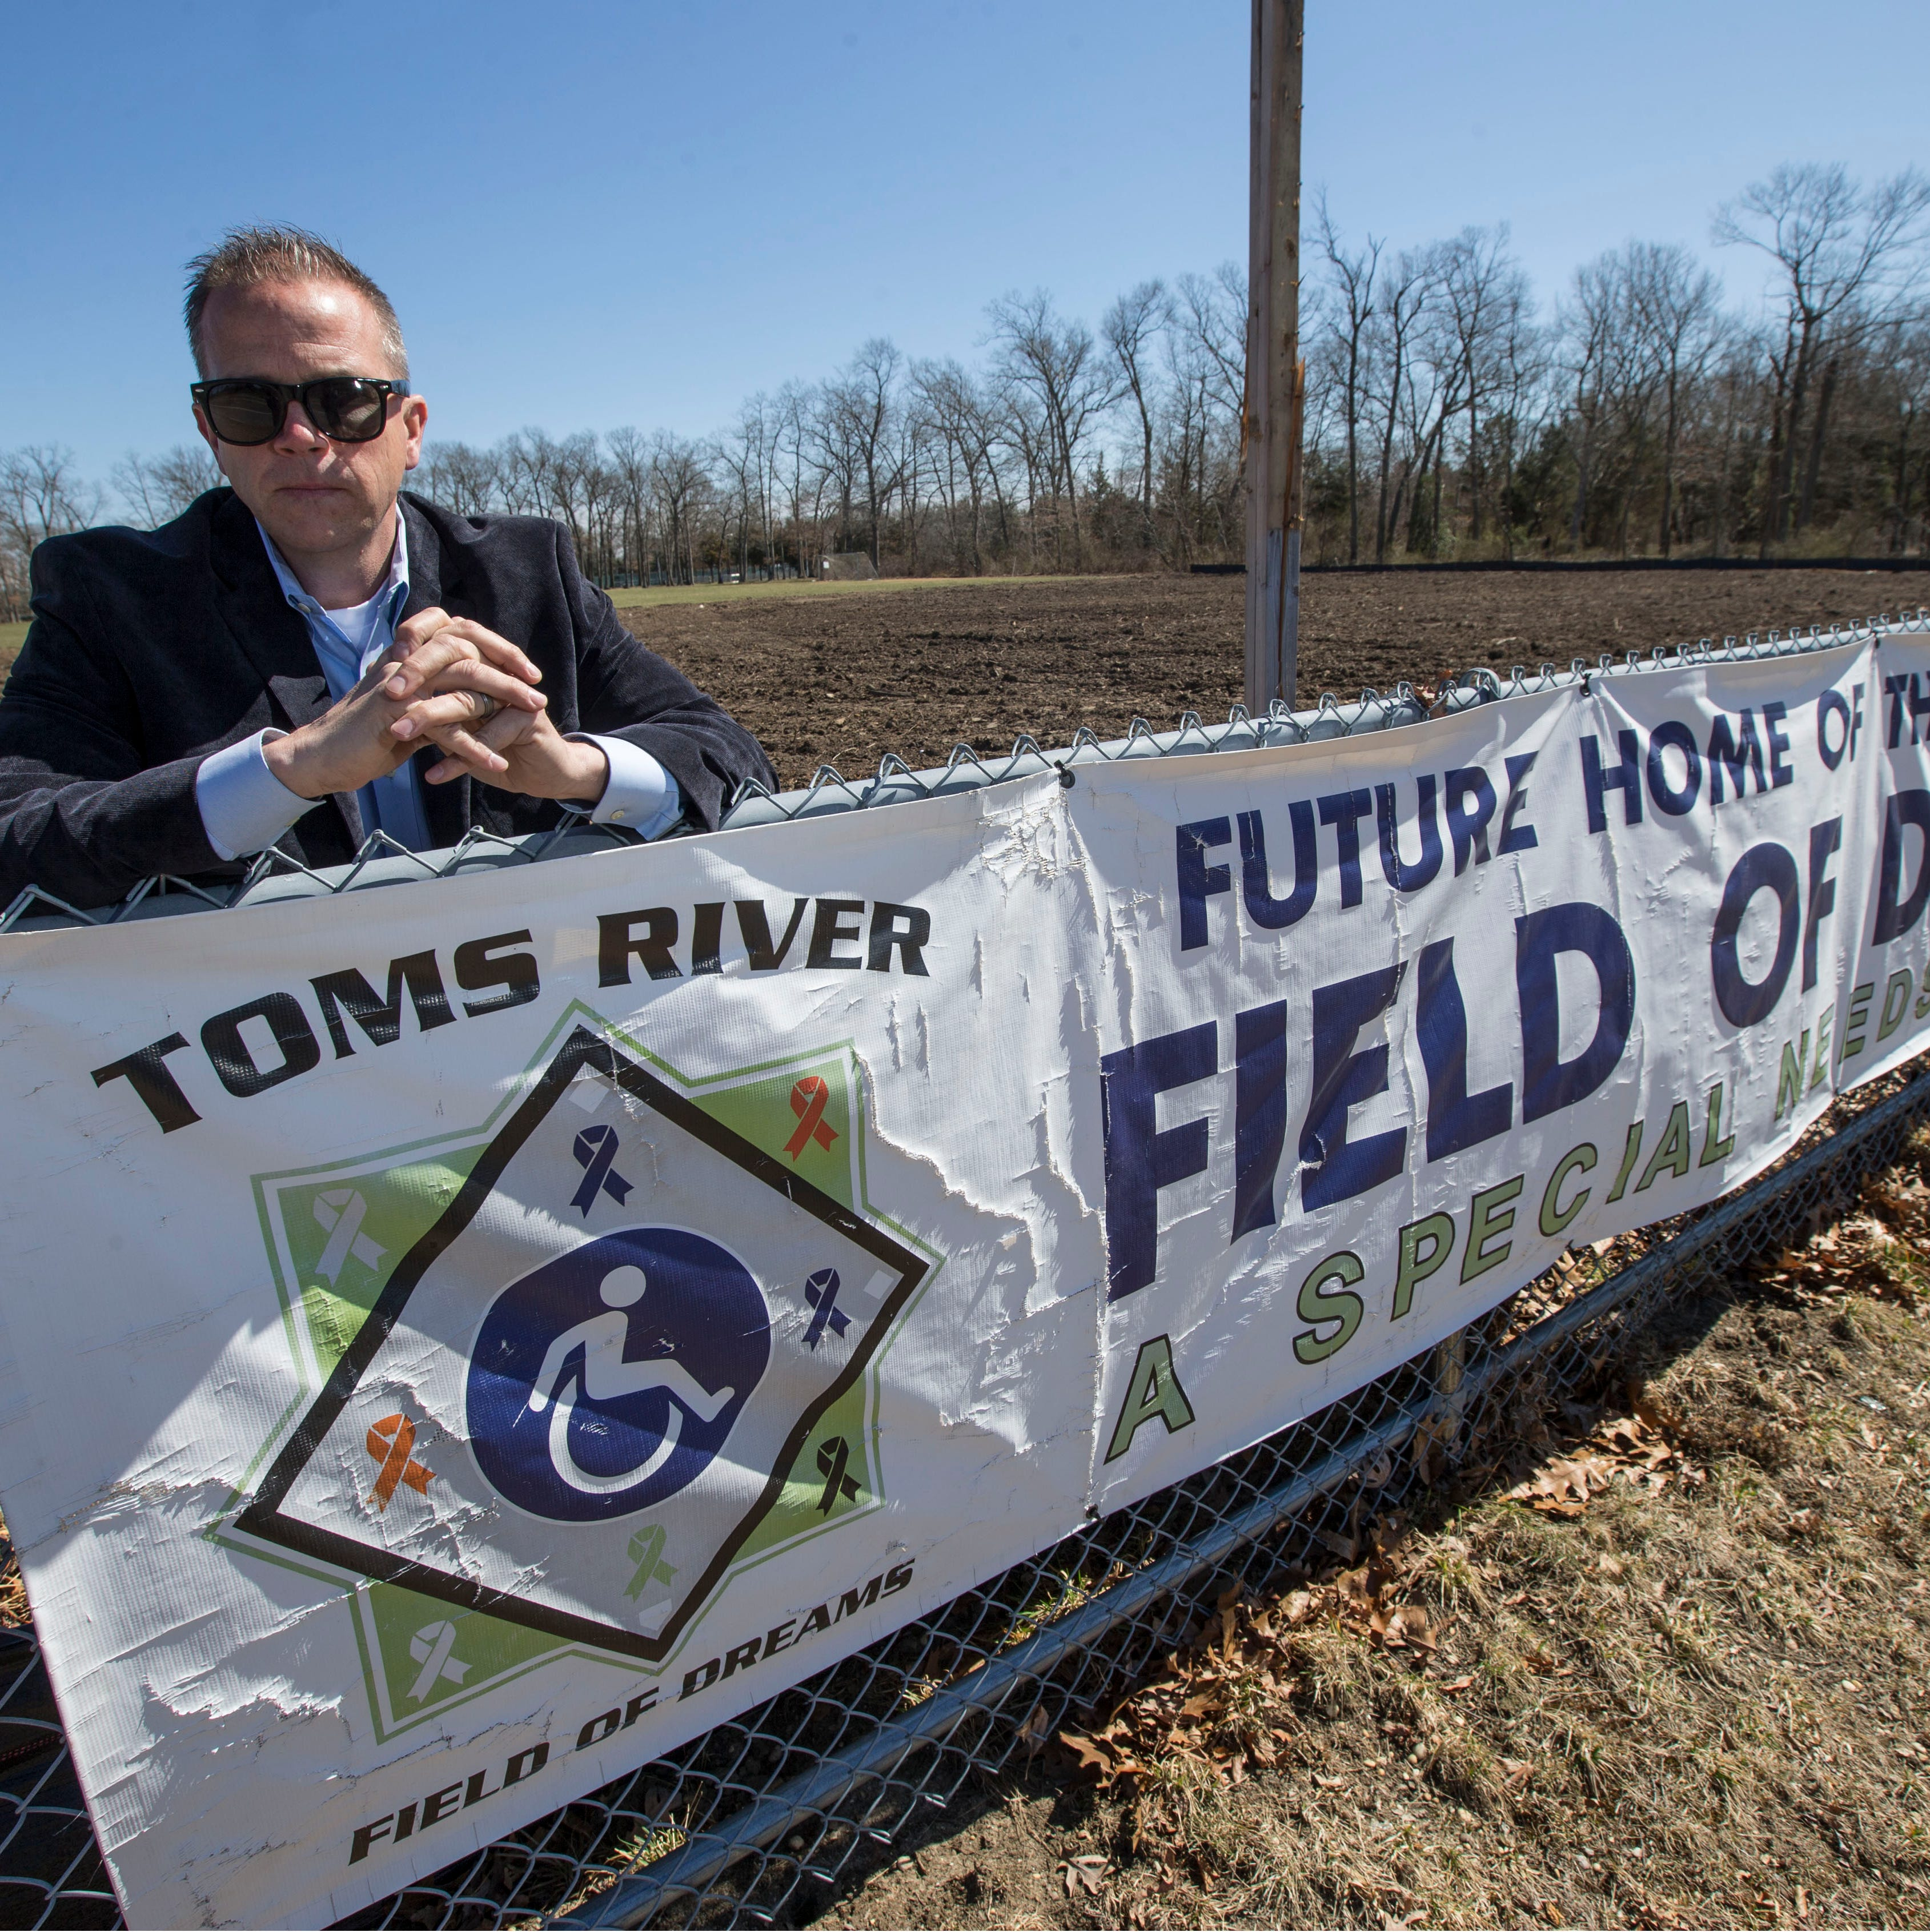 Toms River Field of Dreams: From trial to triumph as finish line nears